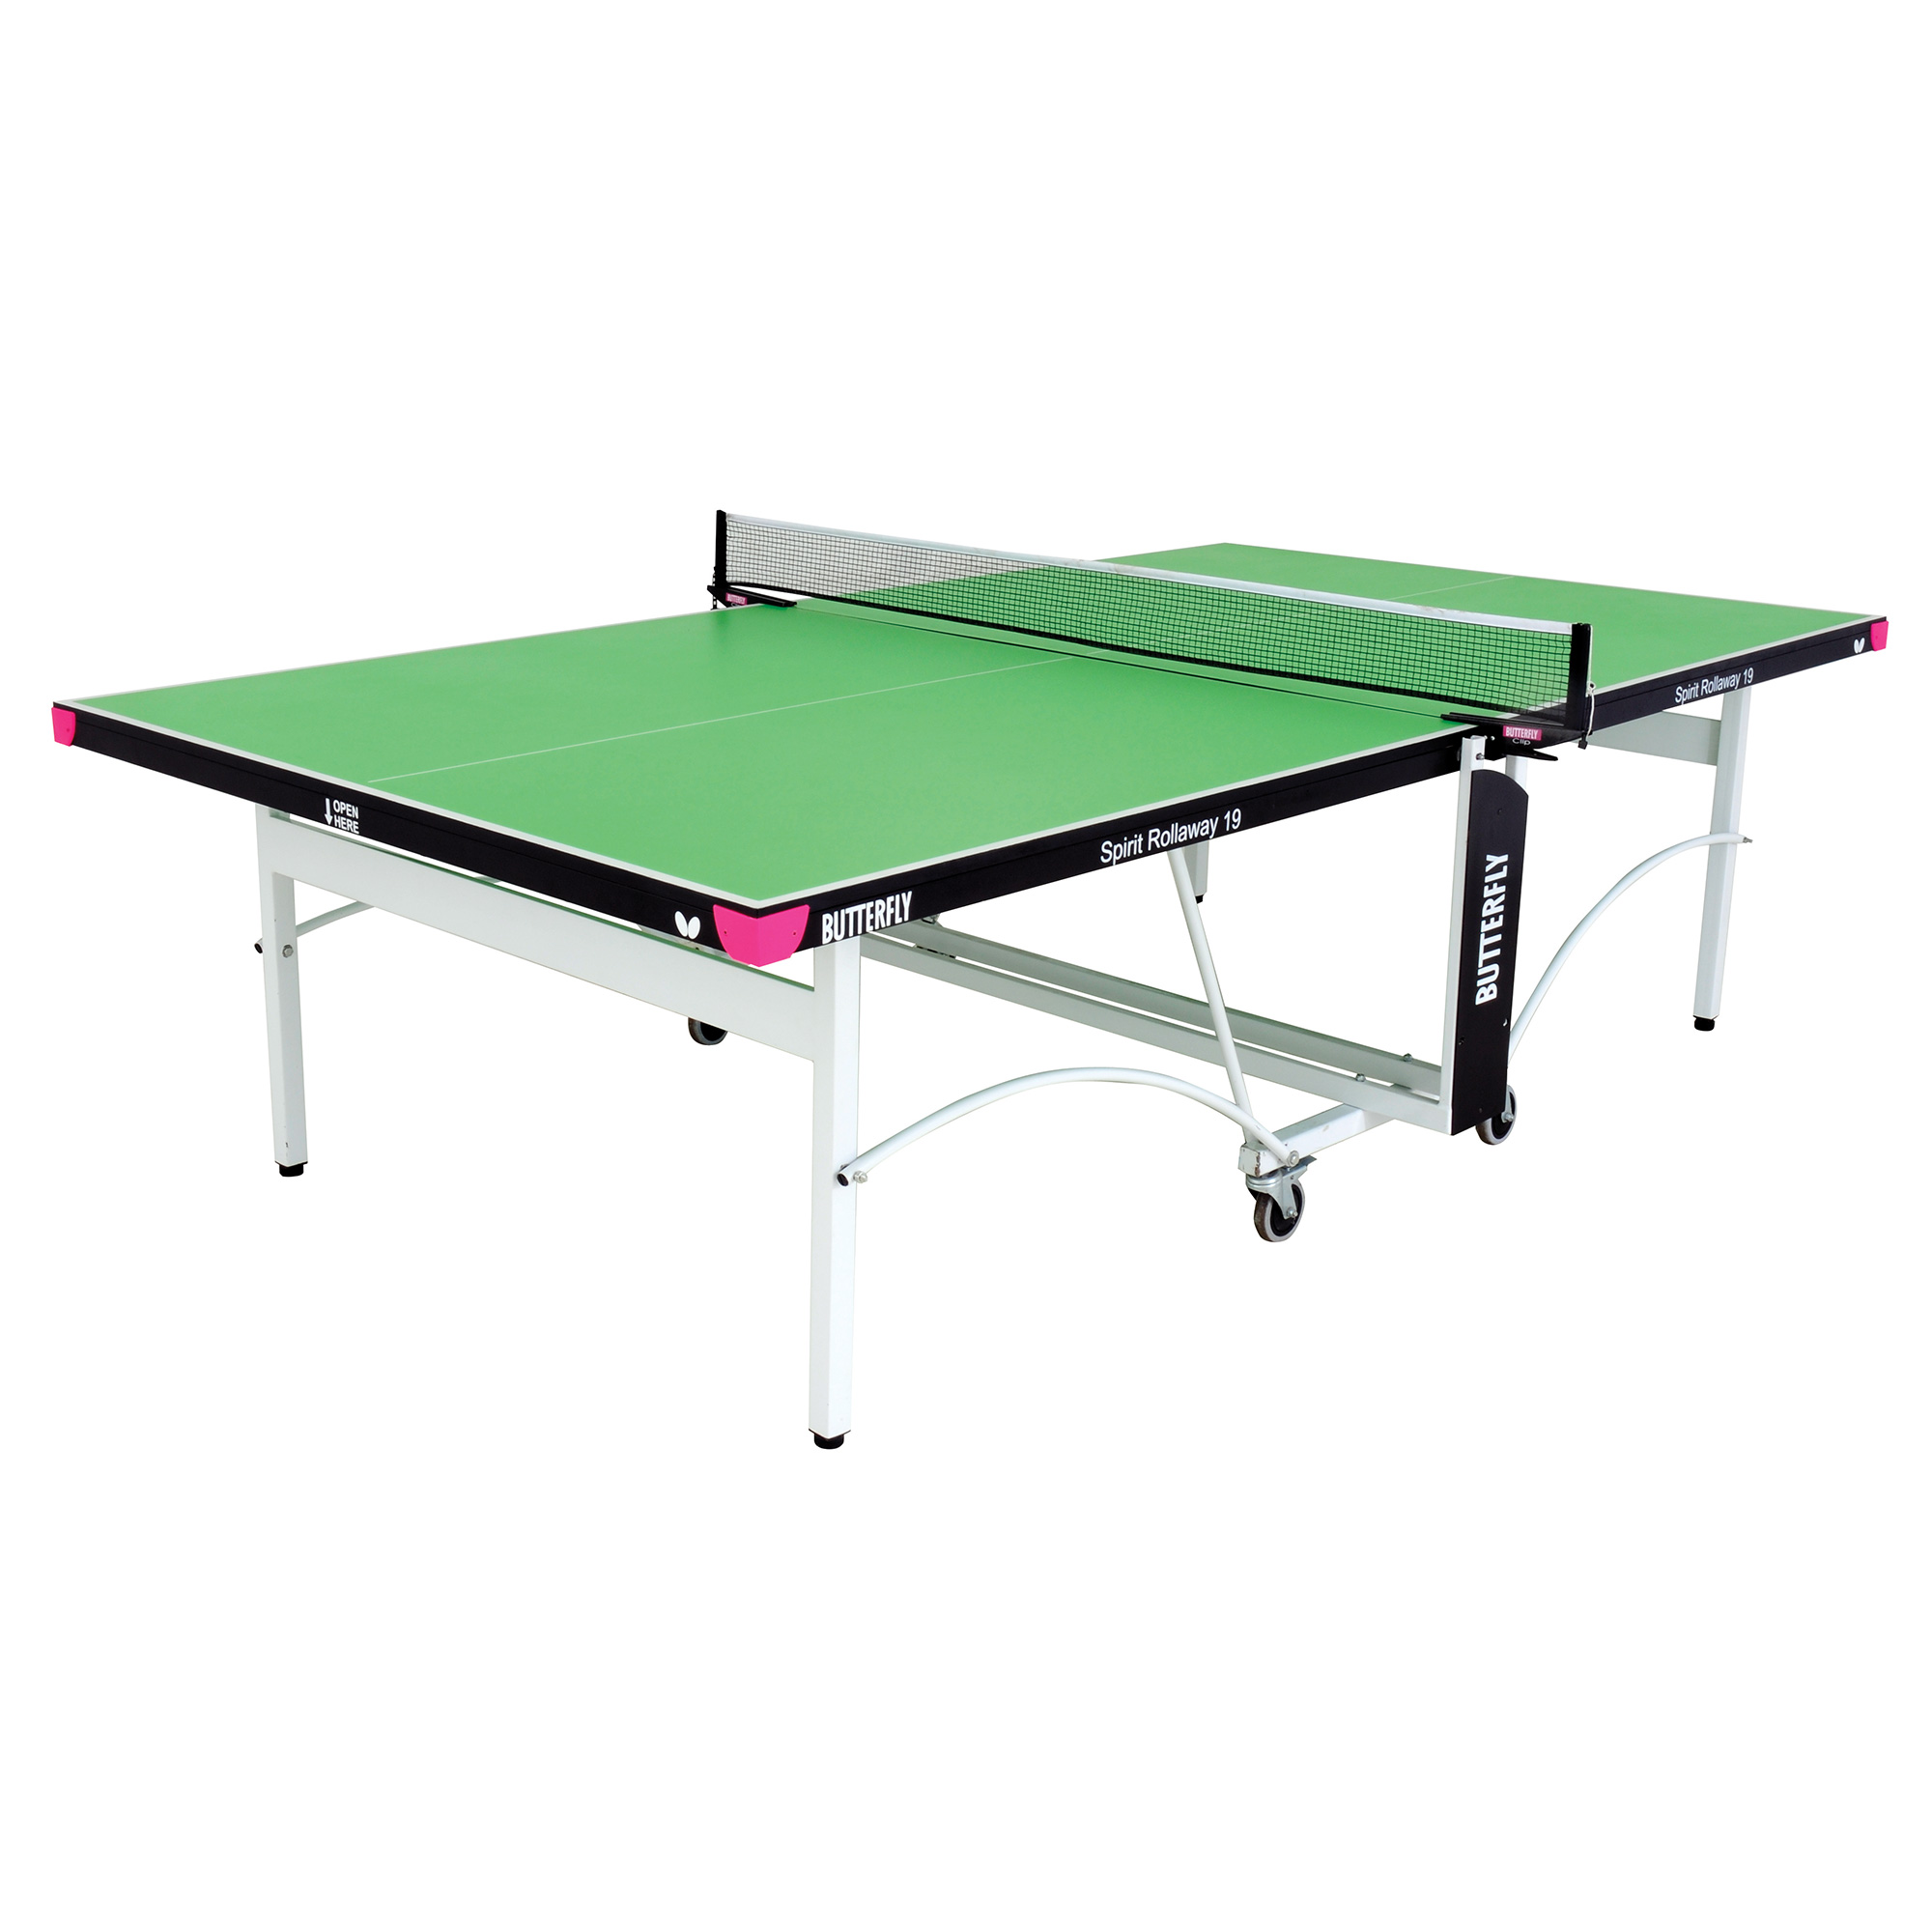 Butterfly Spirit 19 Rollaway Indoor Table Tennis Table  Green